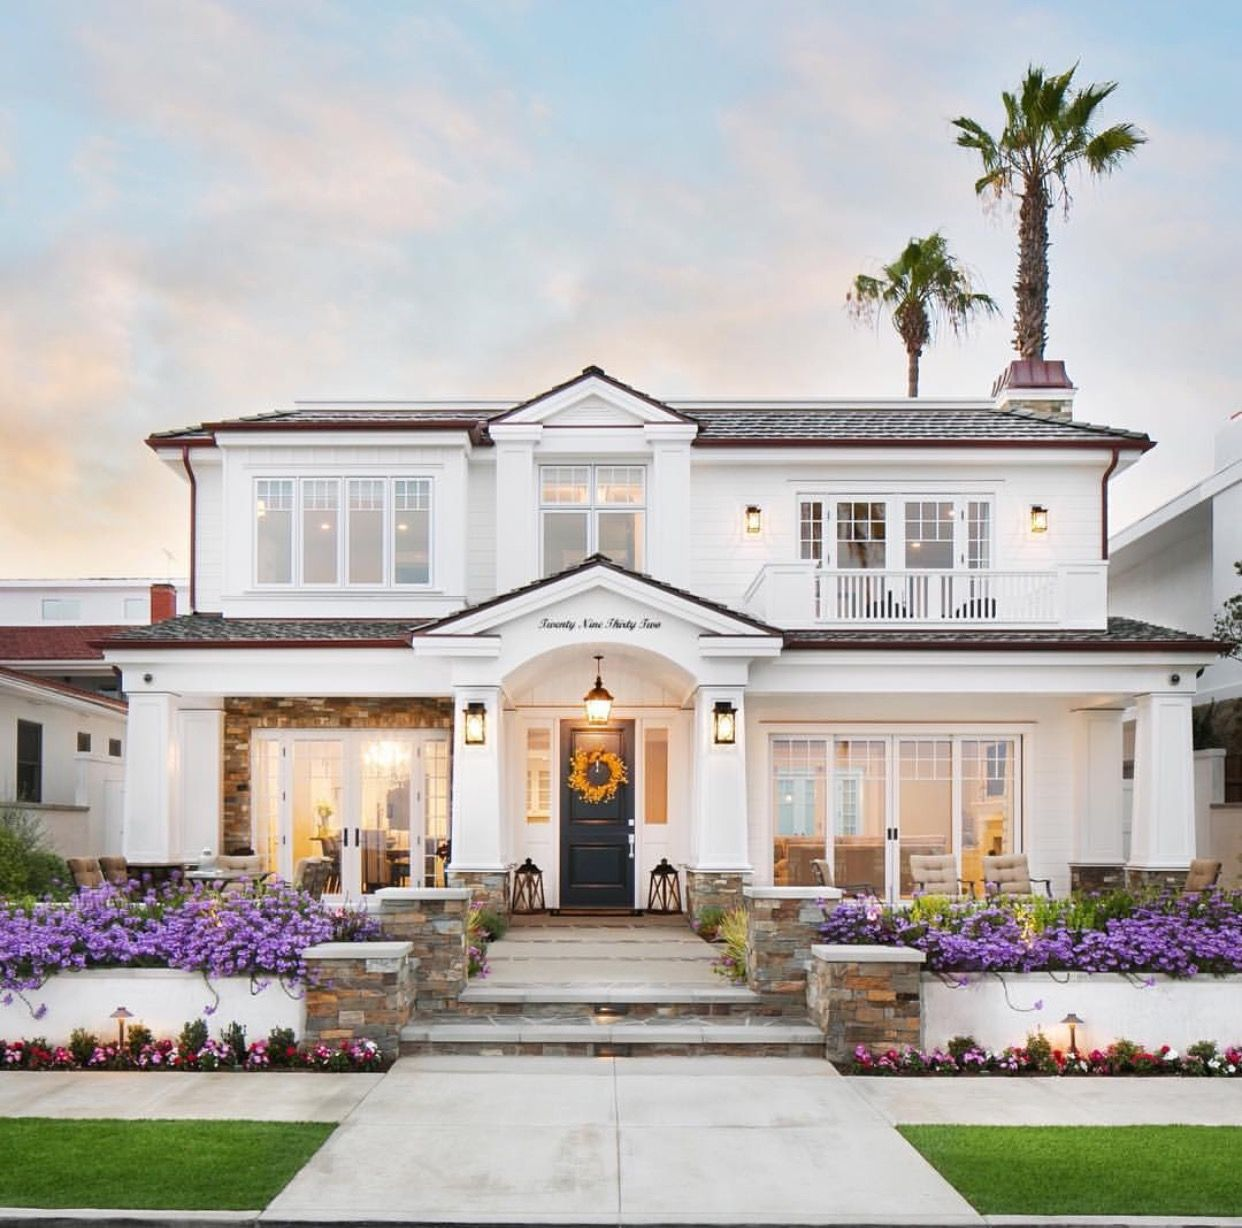 90 Incredible Modern Farmhouse Exterior Design Ideas 63: Front Porch With Archway